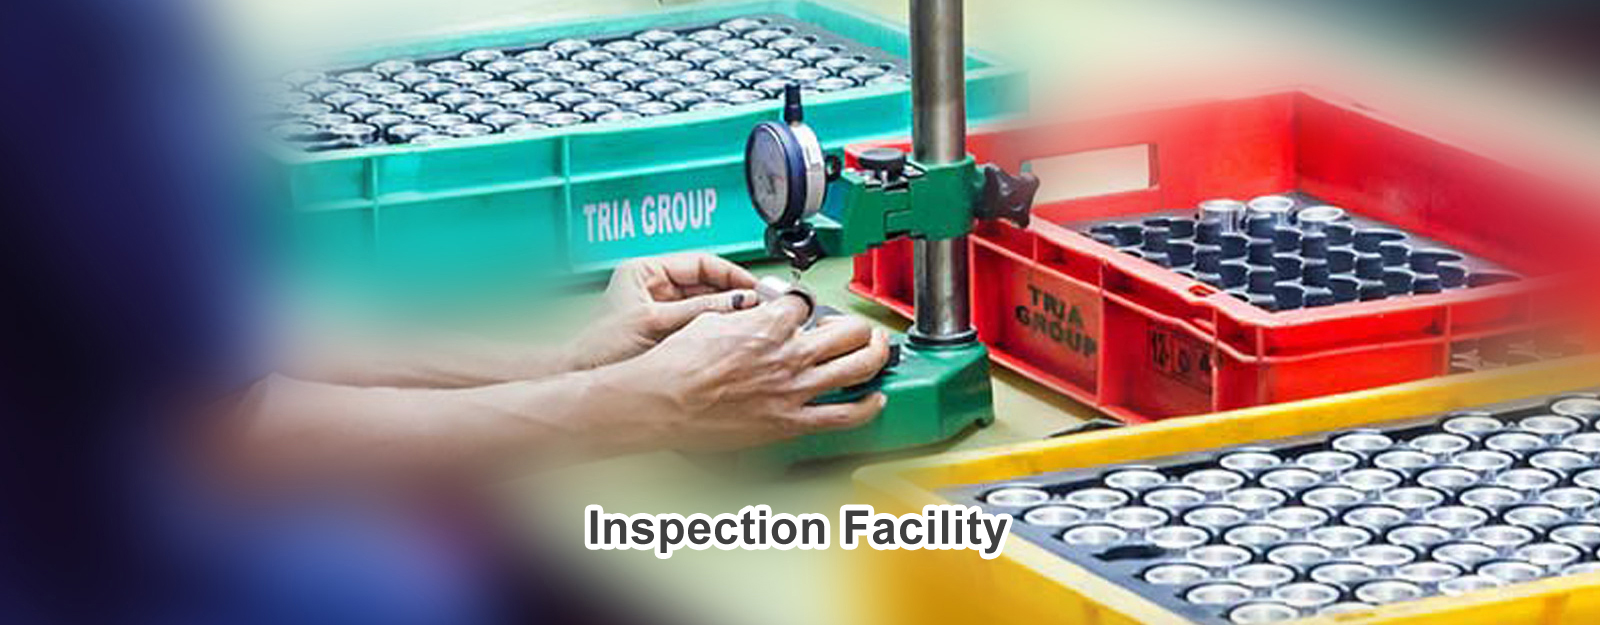 Inspection Facility